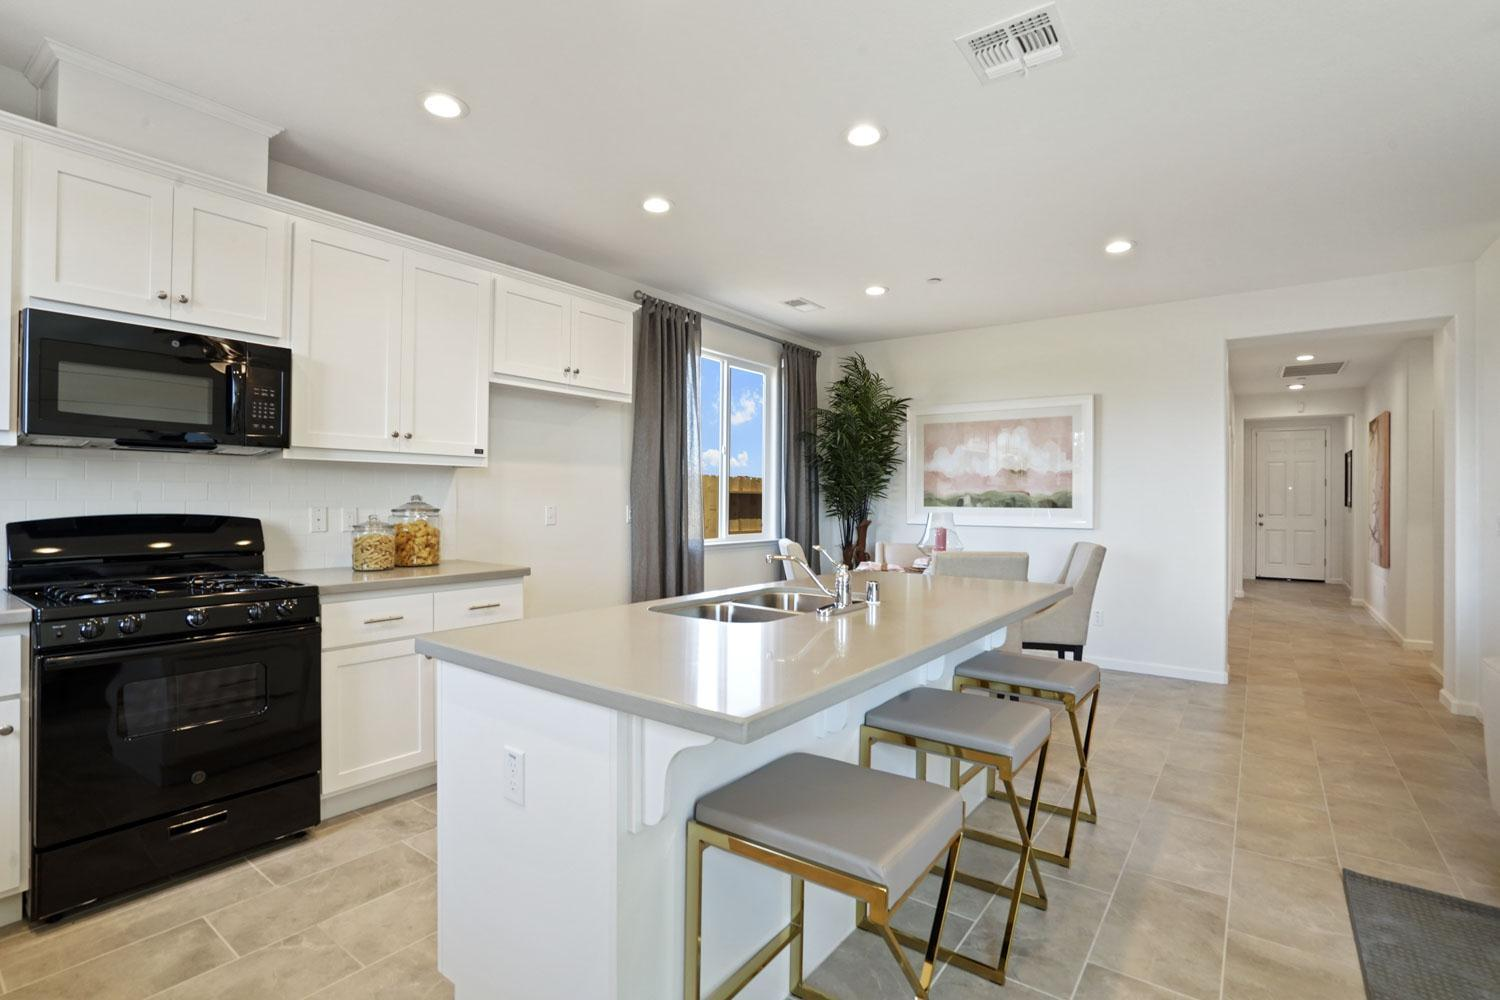 Kitchen featured in The Rainier By Stonefield Home in Merced, CA